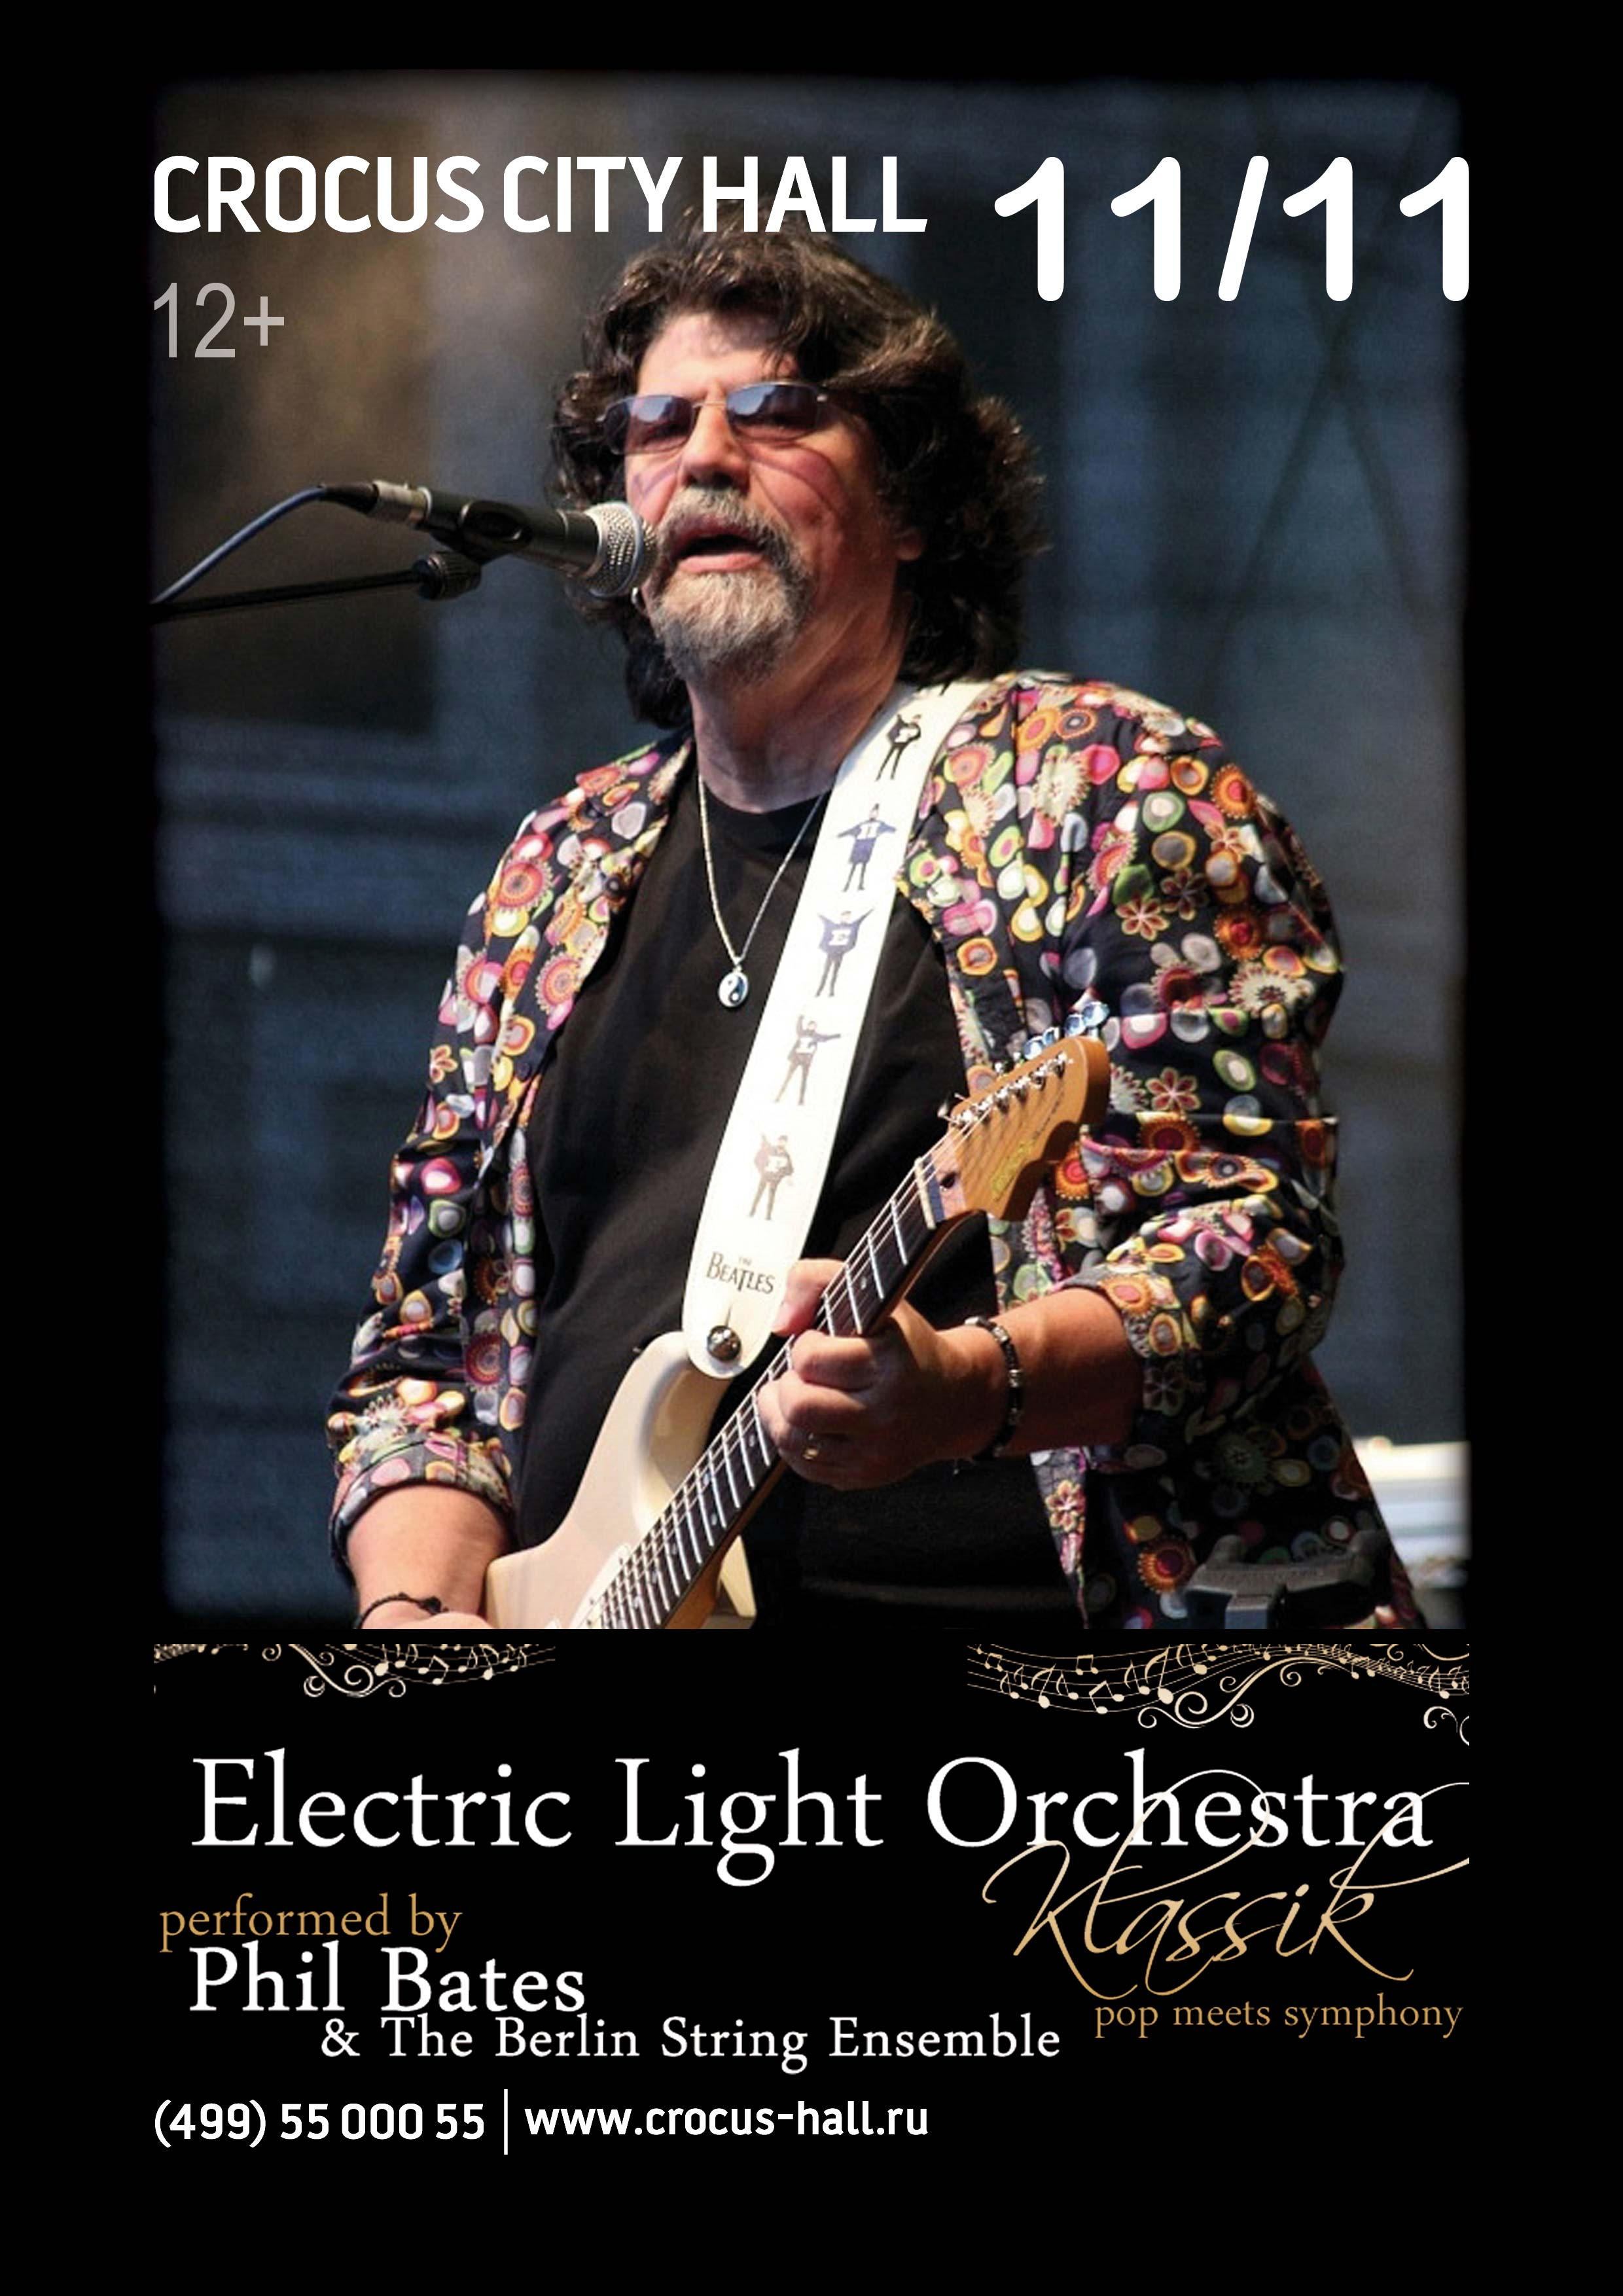 2 2 - ELECTRIC LIGHT ORCHESTRA CLASSIC